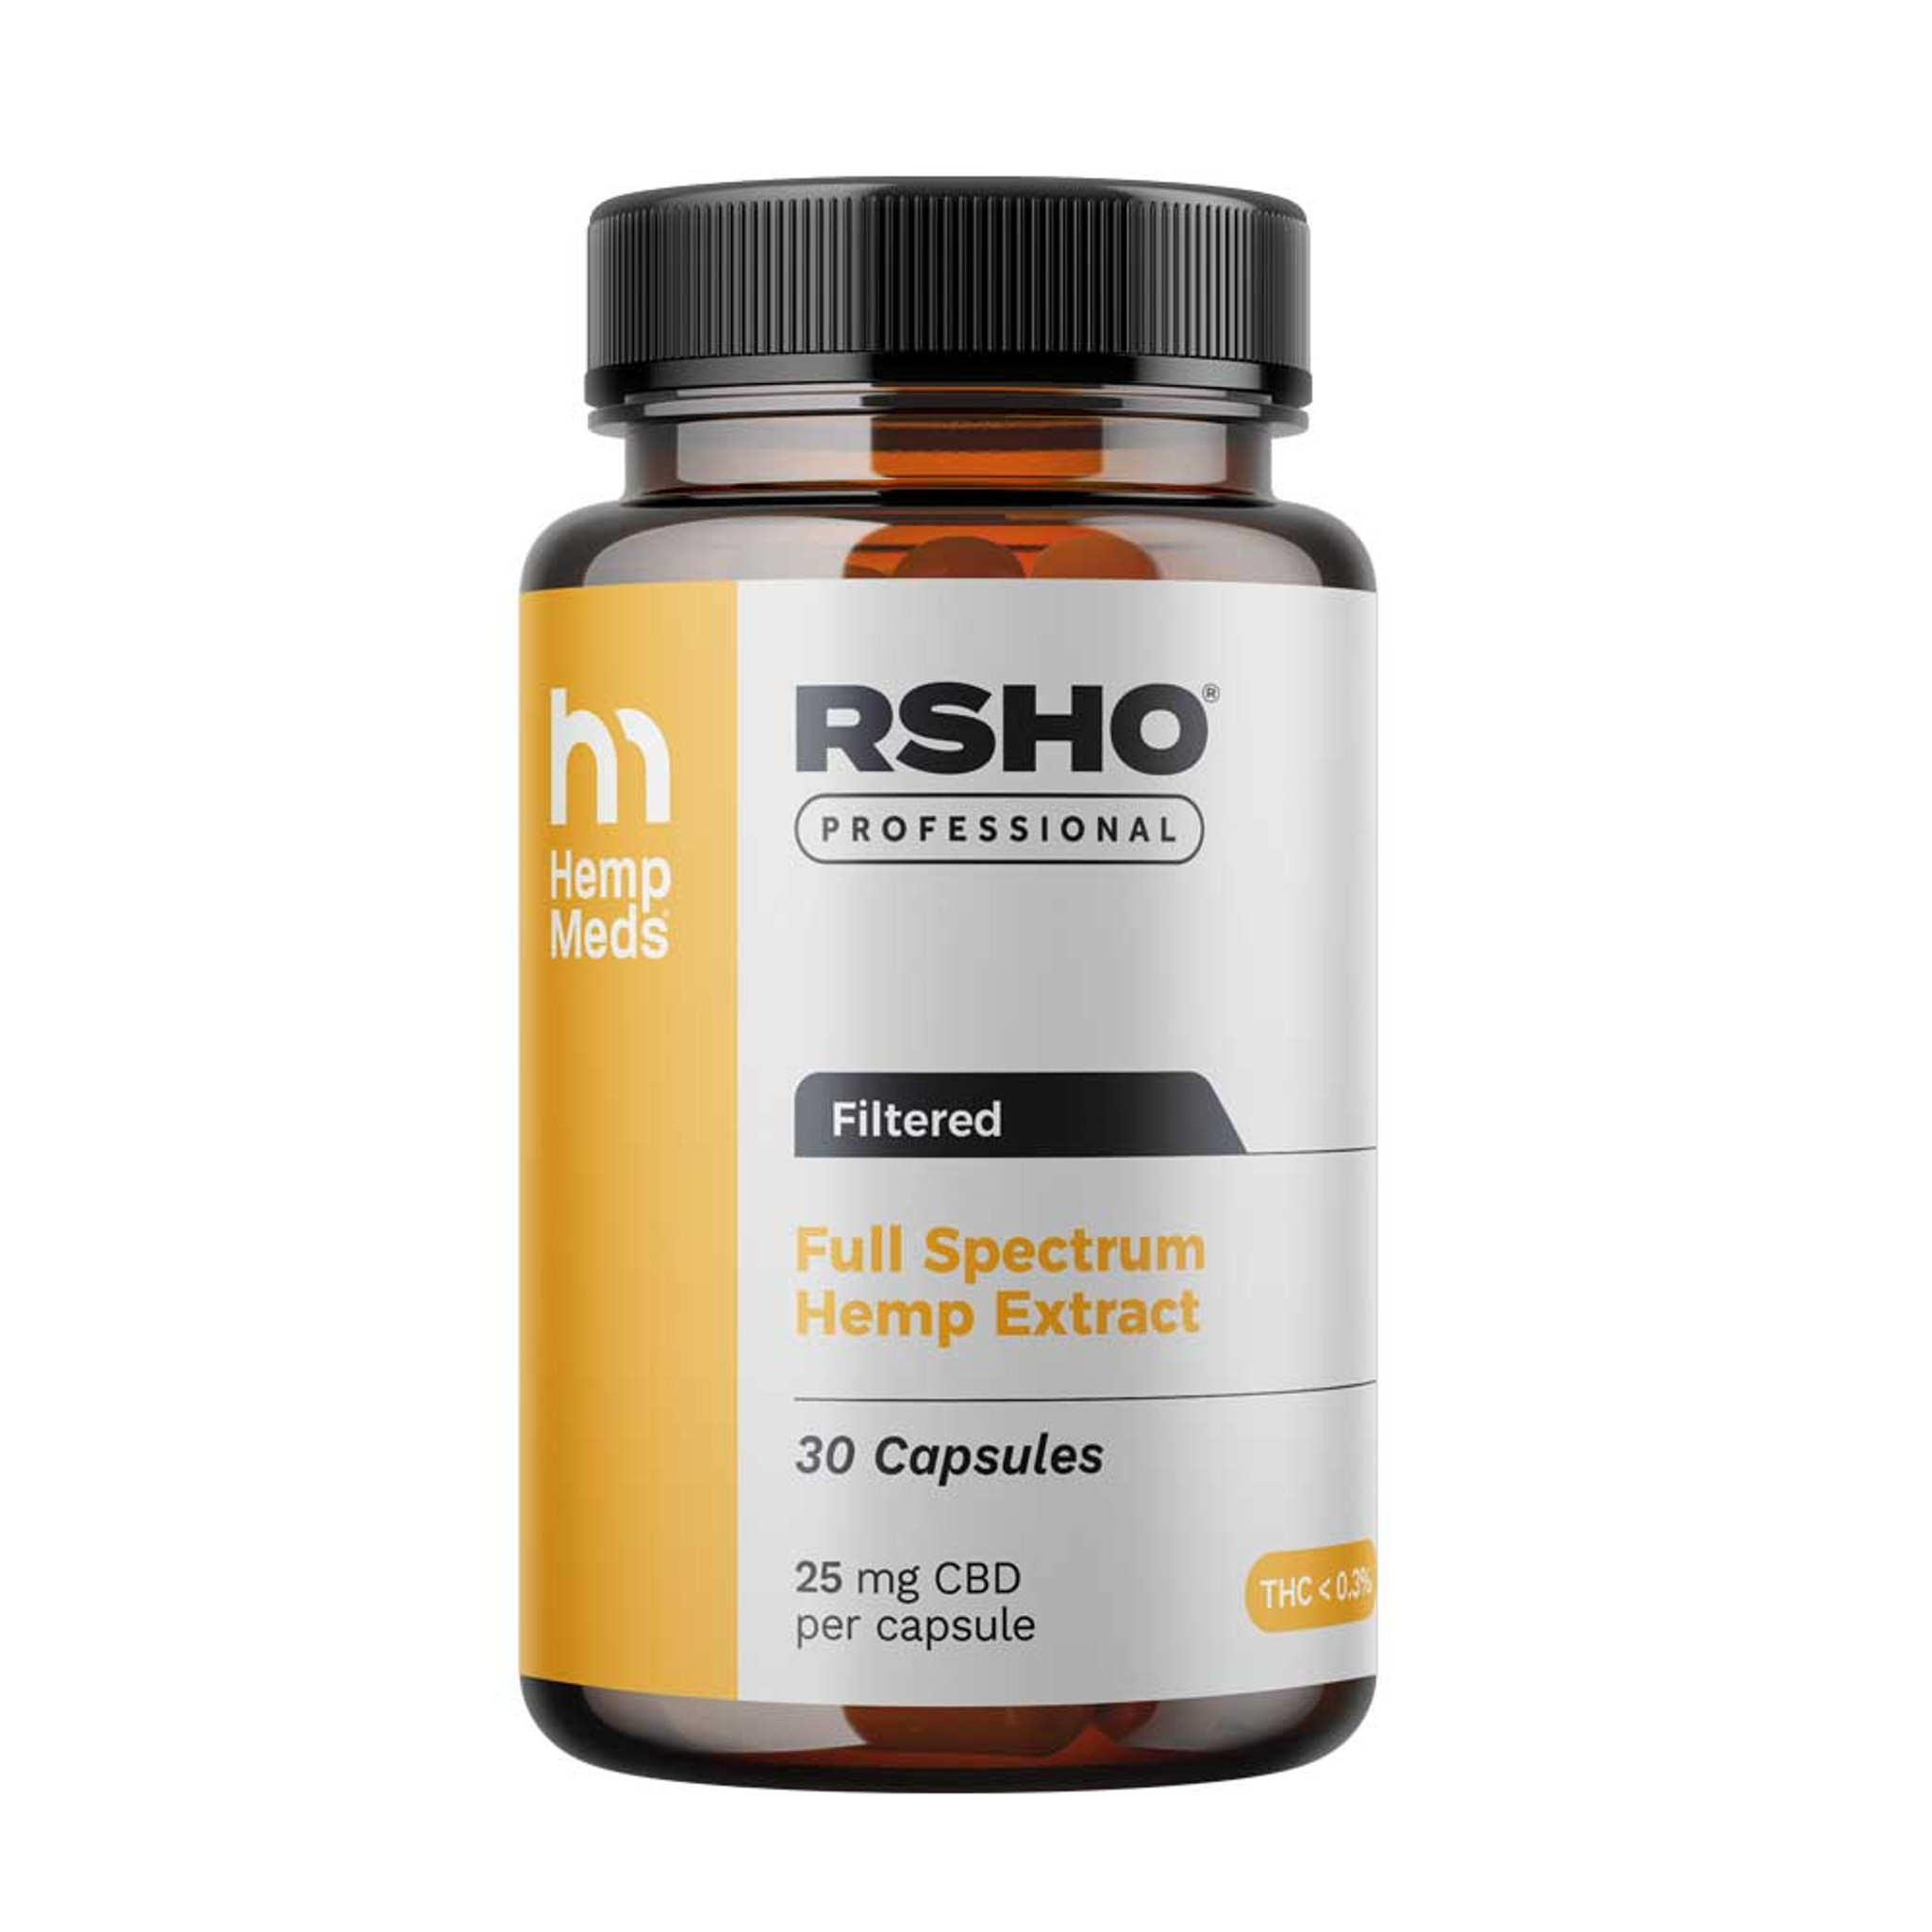 RHSO Pro Gold Label Capsules 25mg CBD 30ct (Heated, Filtered.)